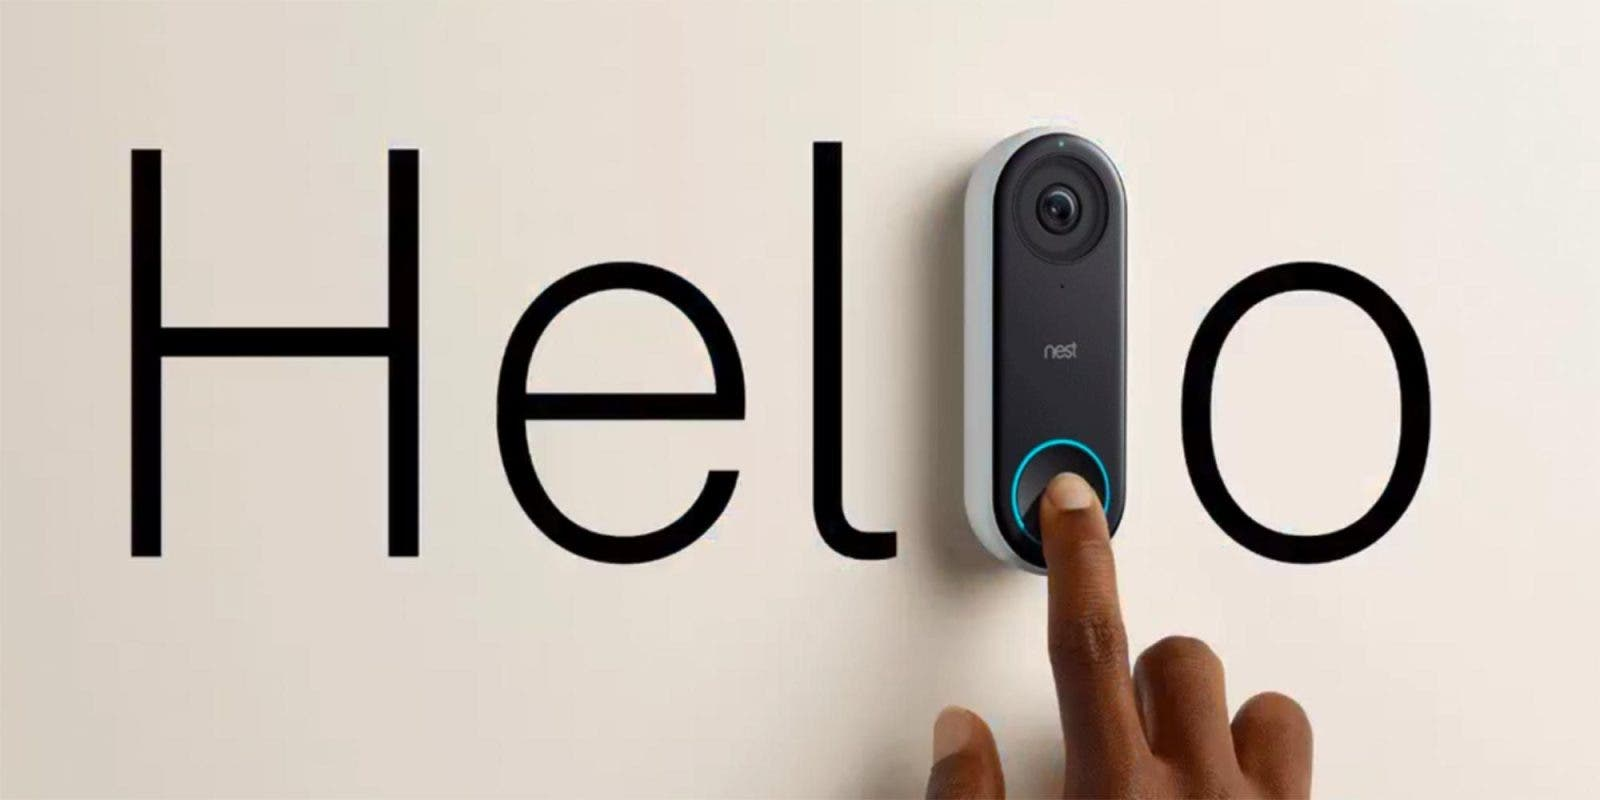 Google Home 2.35 shows a modern doorbell-shaped gadget that could be used as a security system. Successor to Nest Hello